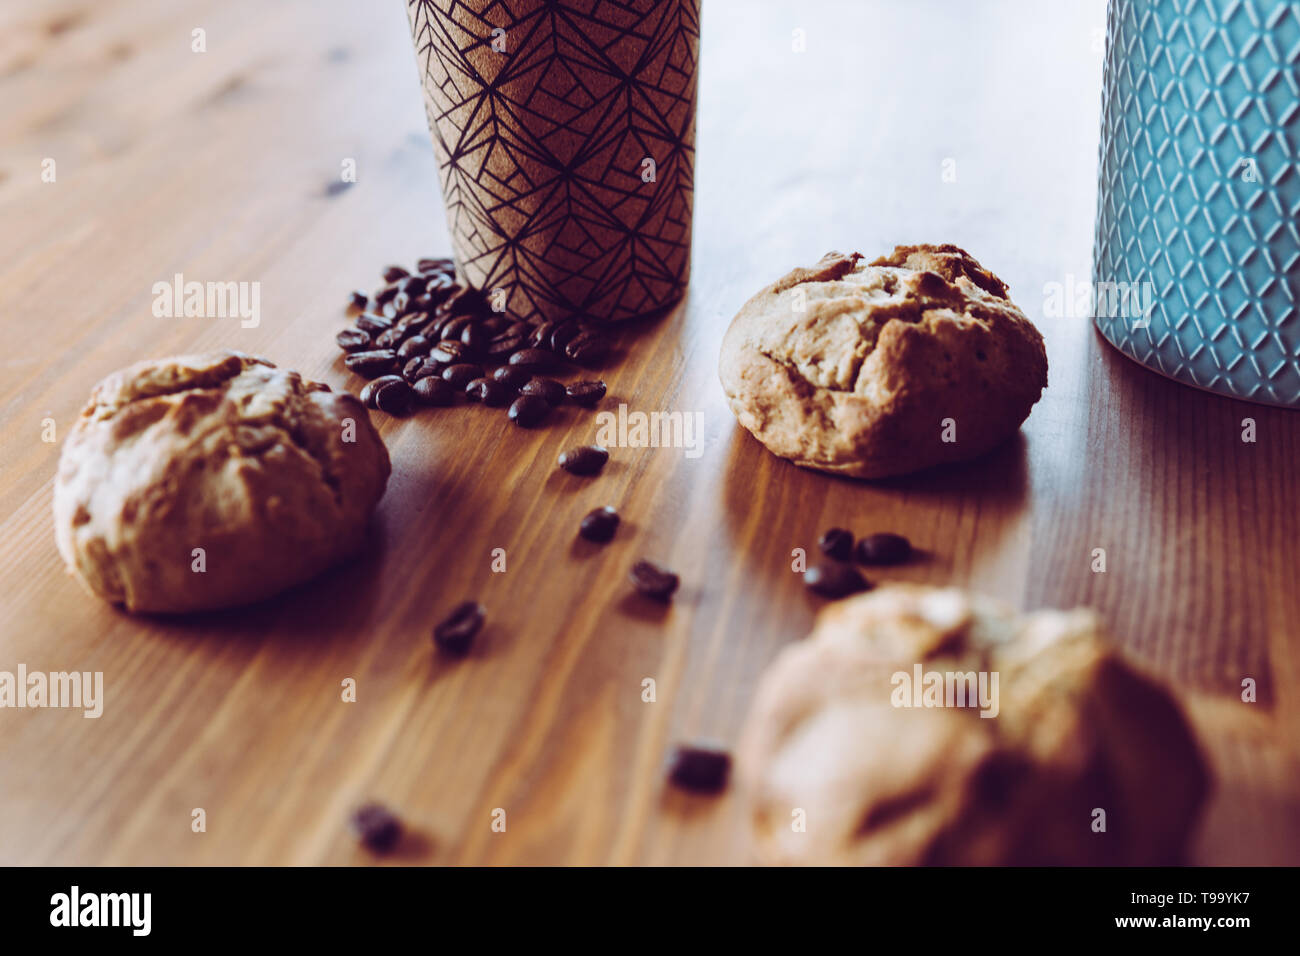 Three homemade vegan bread rolls, freshly roasted coffee beans, one coffee to go cup and teal ceramic can on a wooden table (close-up, focus on beans) - Stock Image